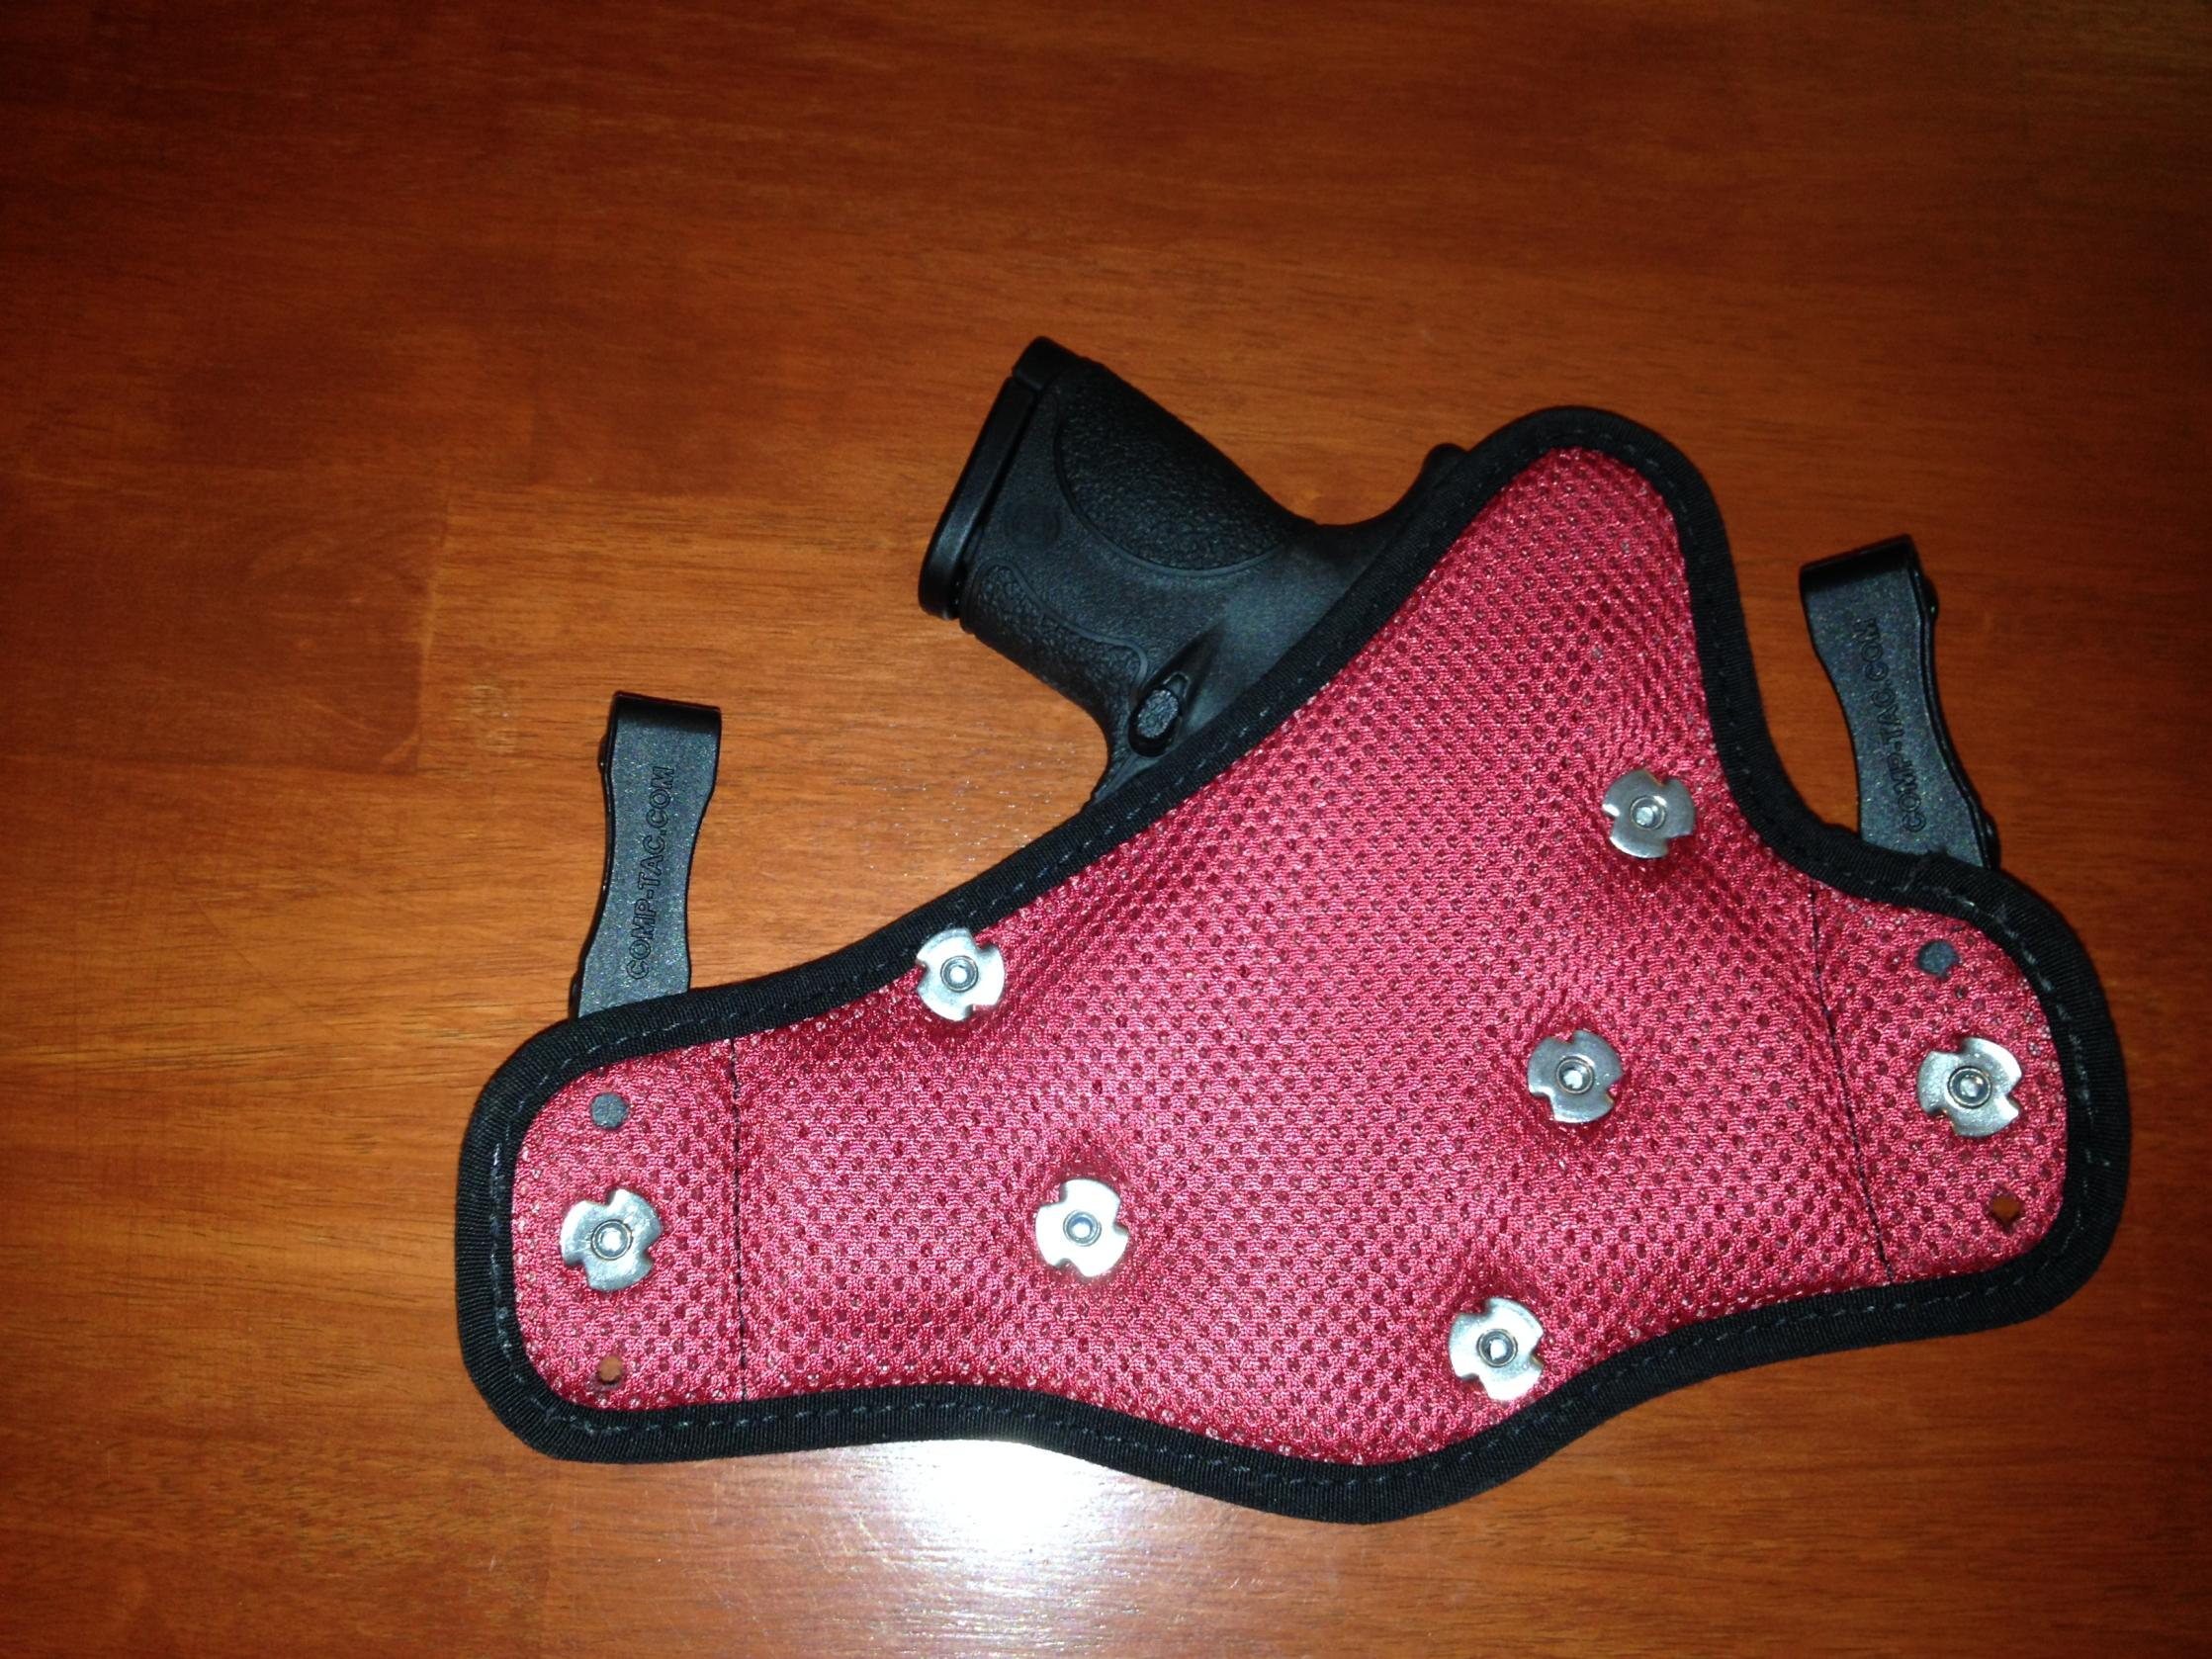 Steathgear USA holster initial impressions.-img_1261.jpg